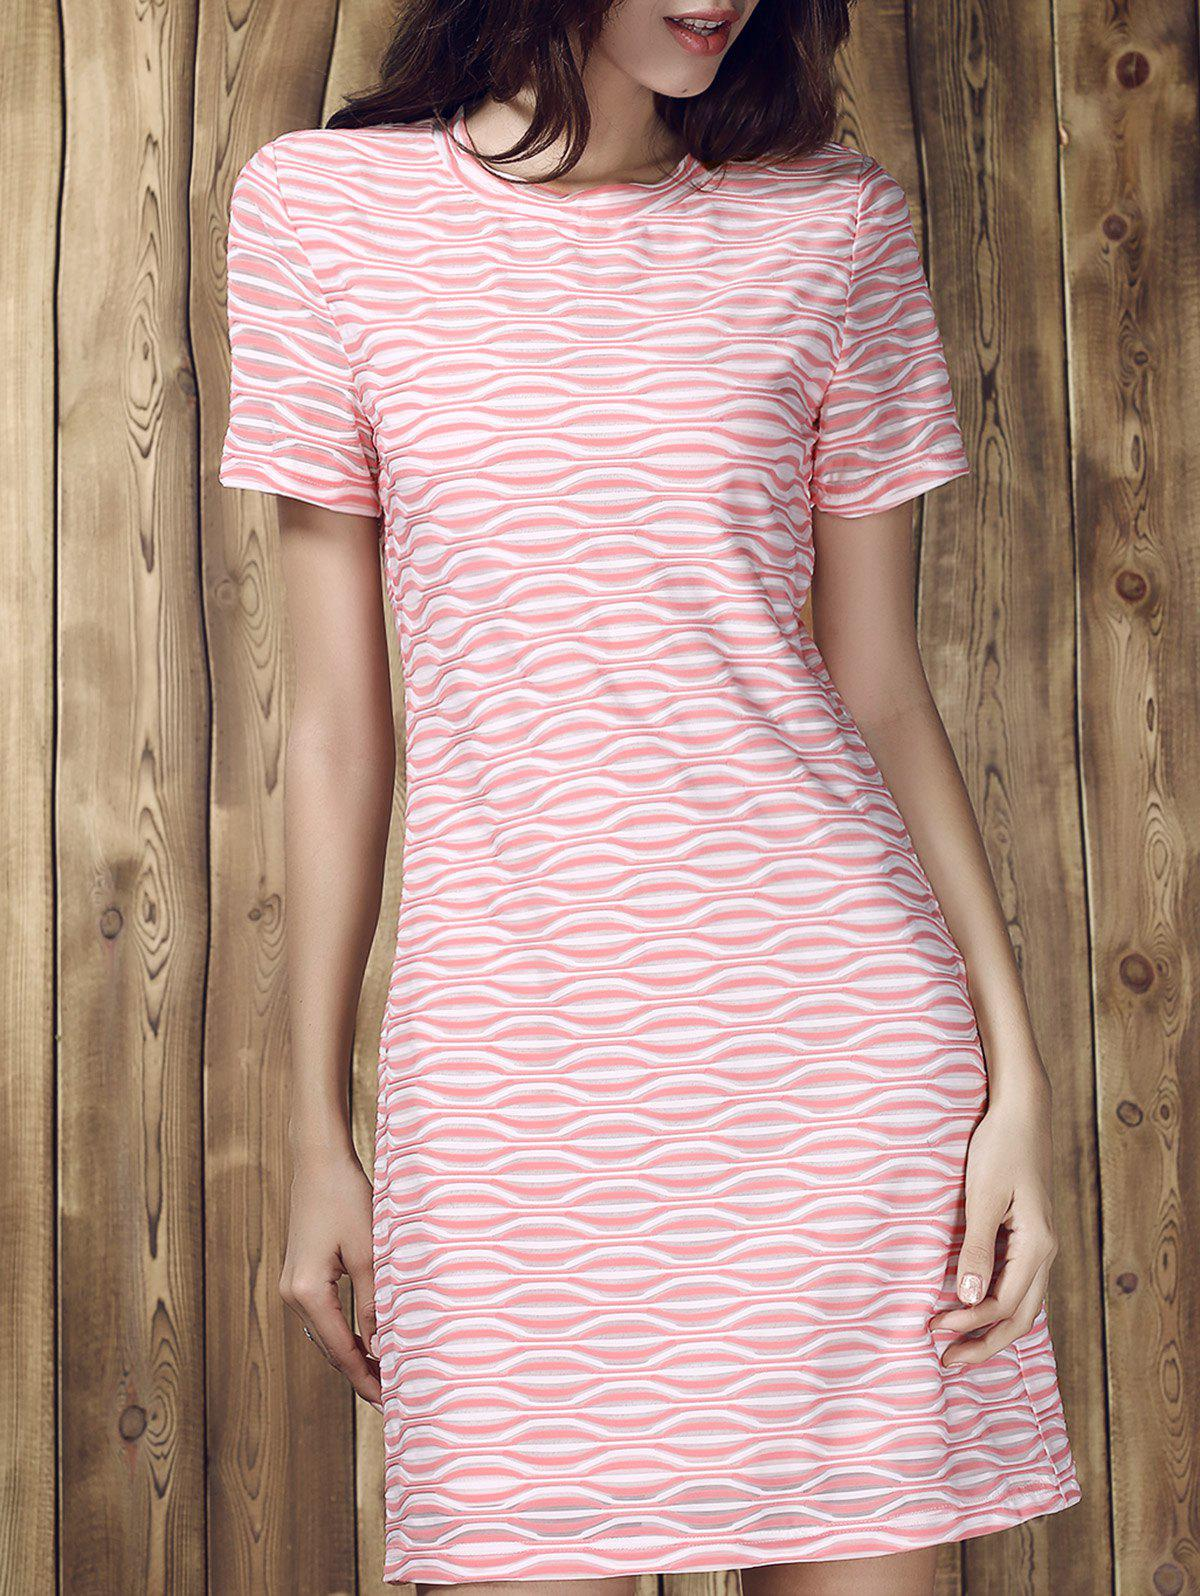 Stripe Round Collar Short Sleeve Dress - COLORMIX XL